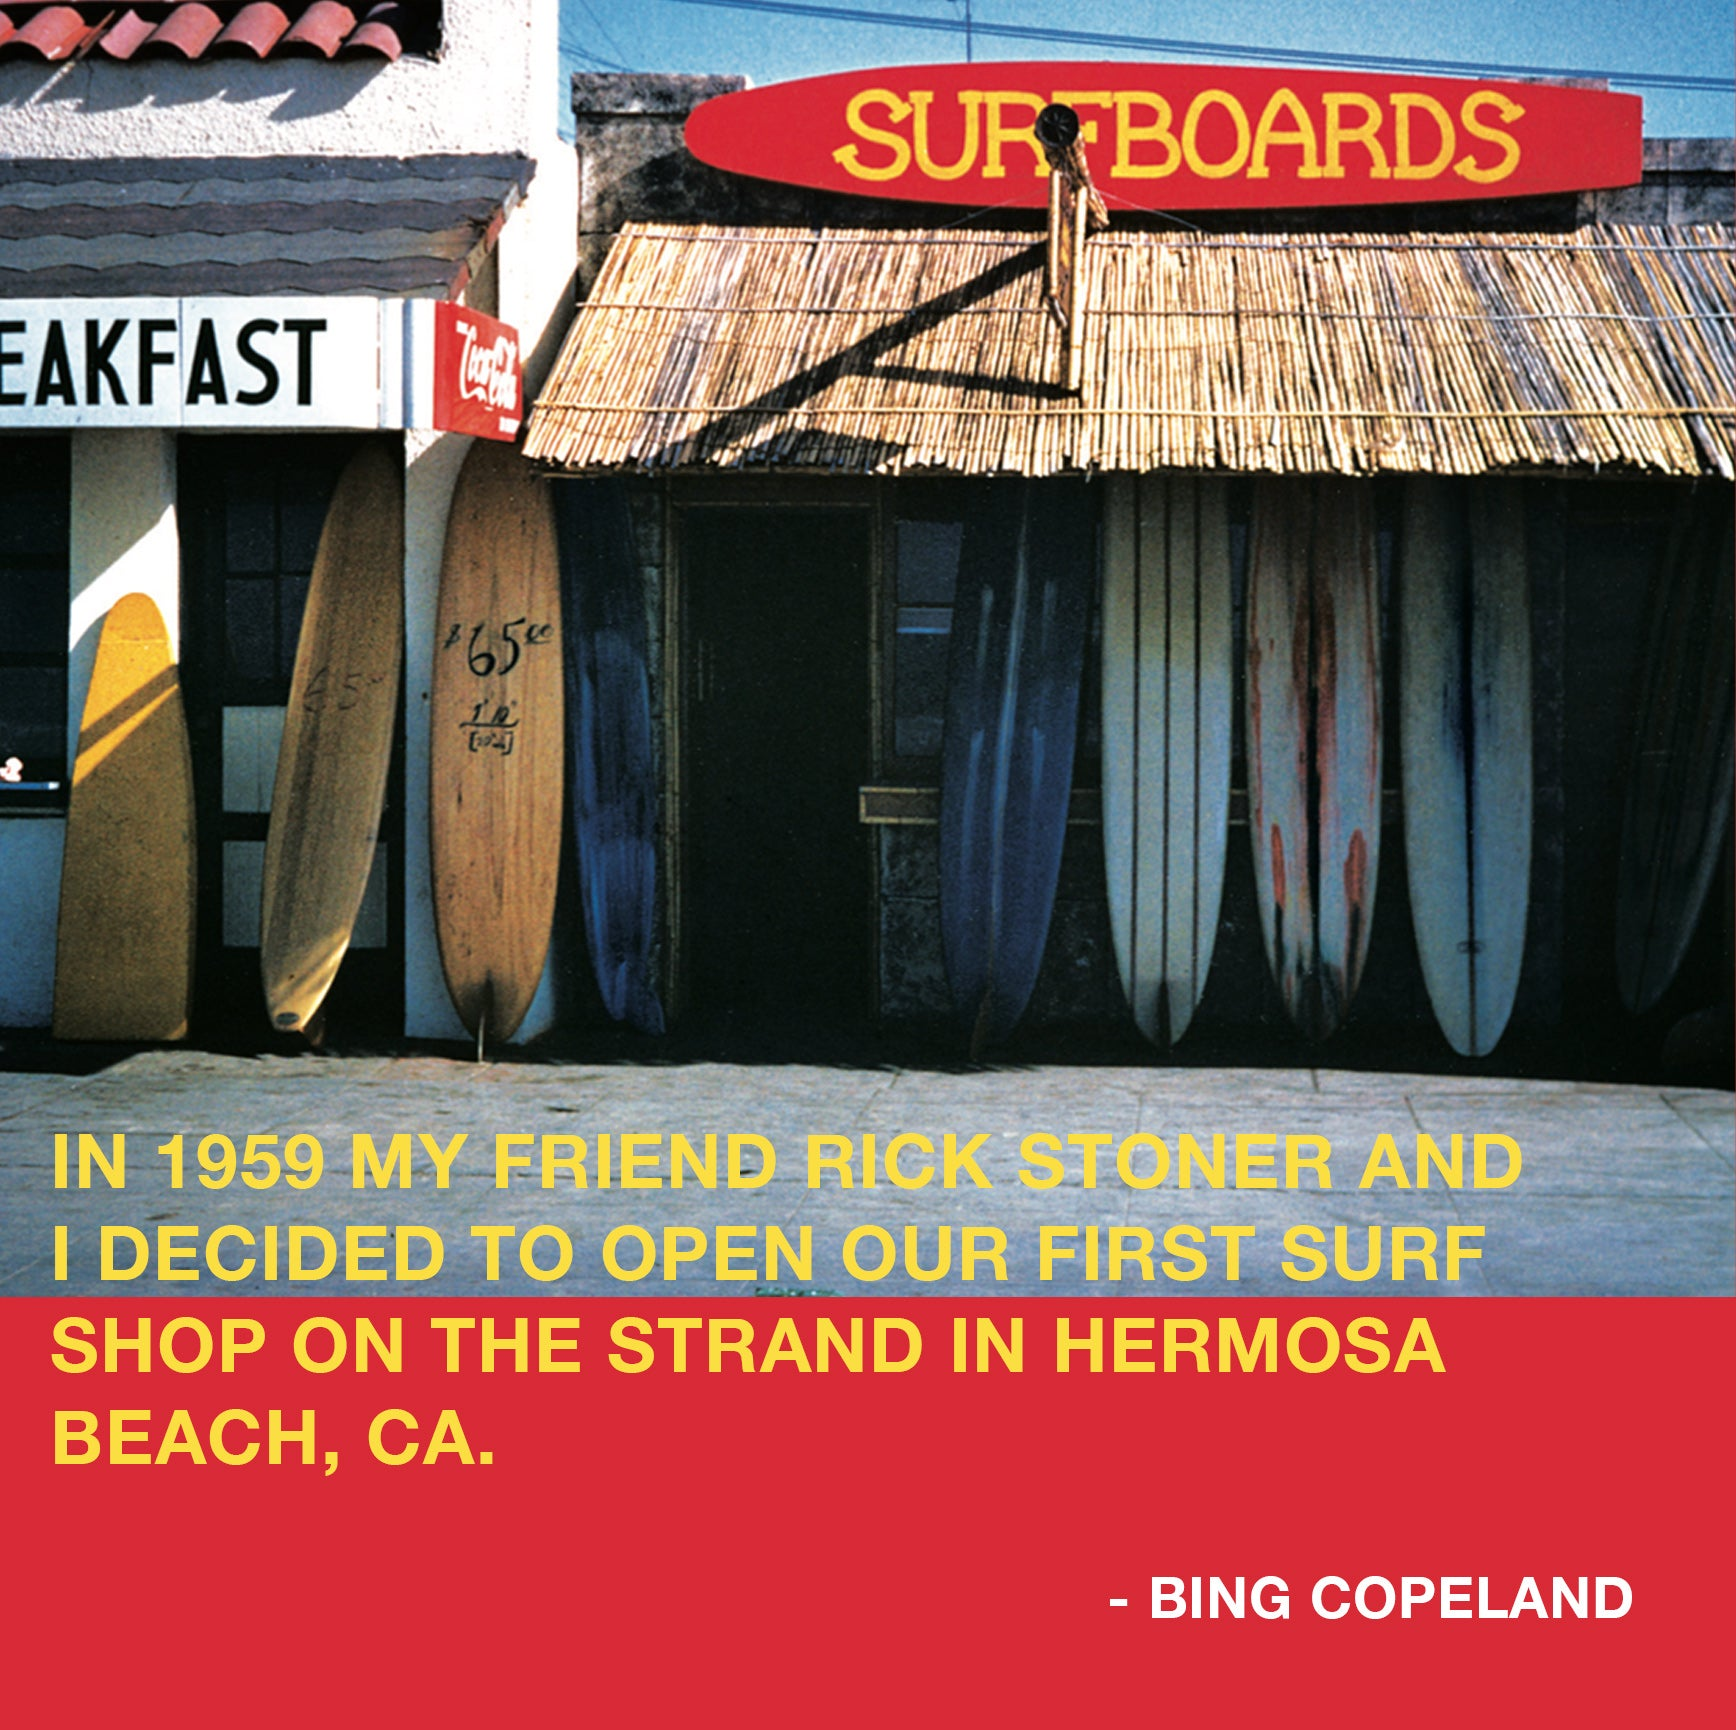 Bing and Rick Surfboards Surf Shop Hermosa Beach 1959